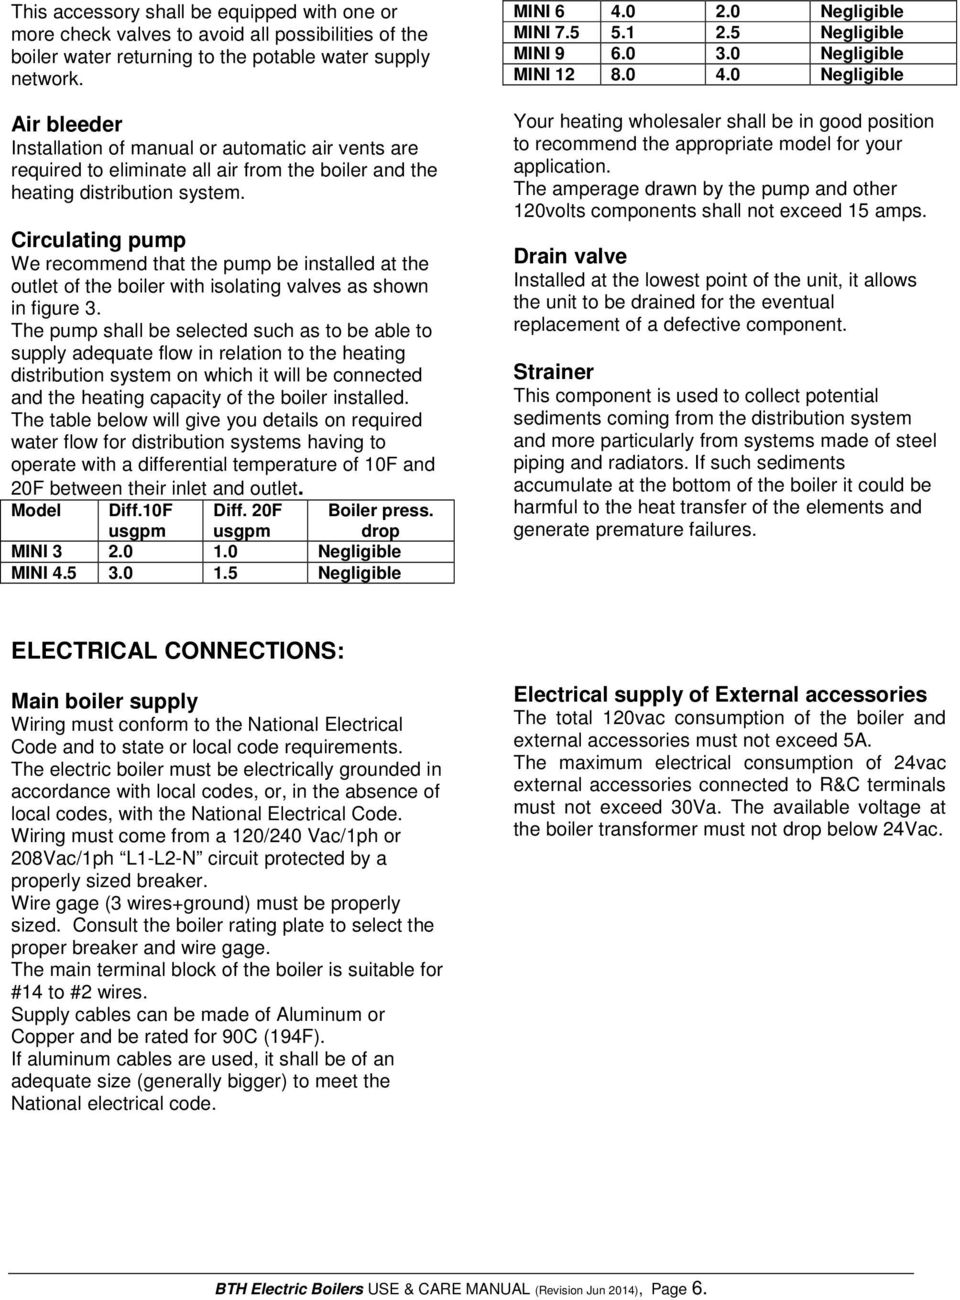 Luxury Thermax Boiler Manual Pdf Motif - Electrical Diagram Ideas ...